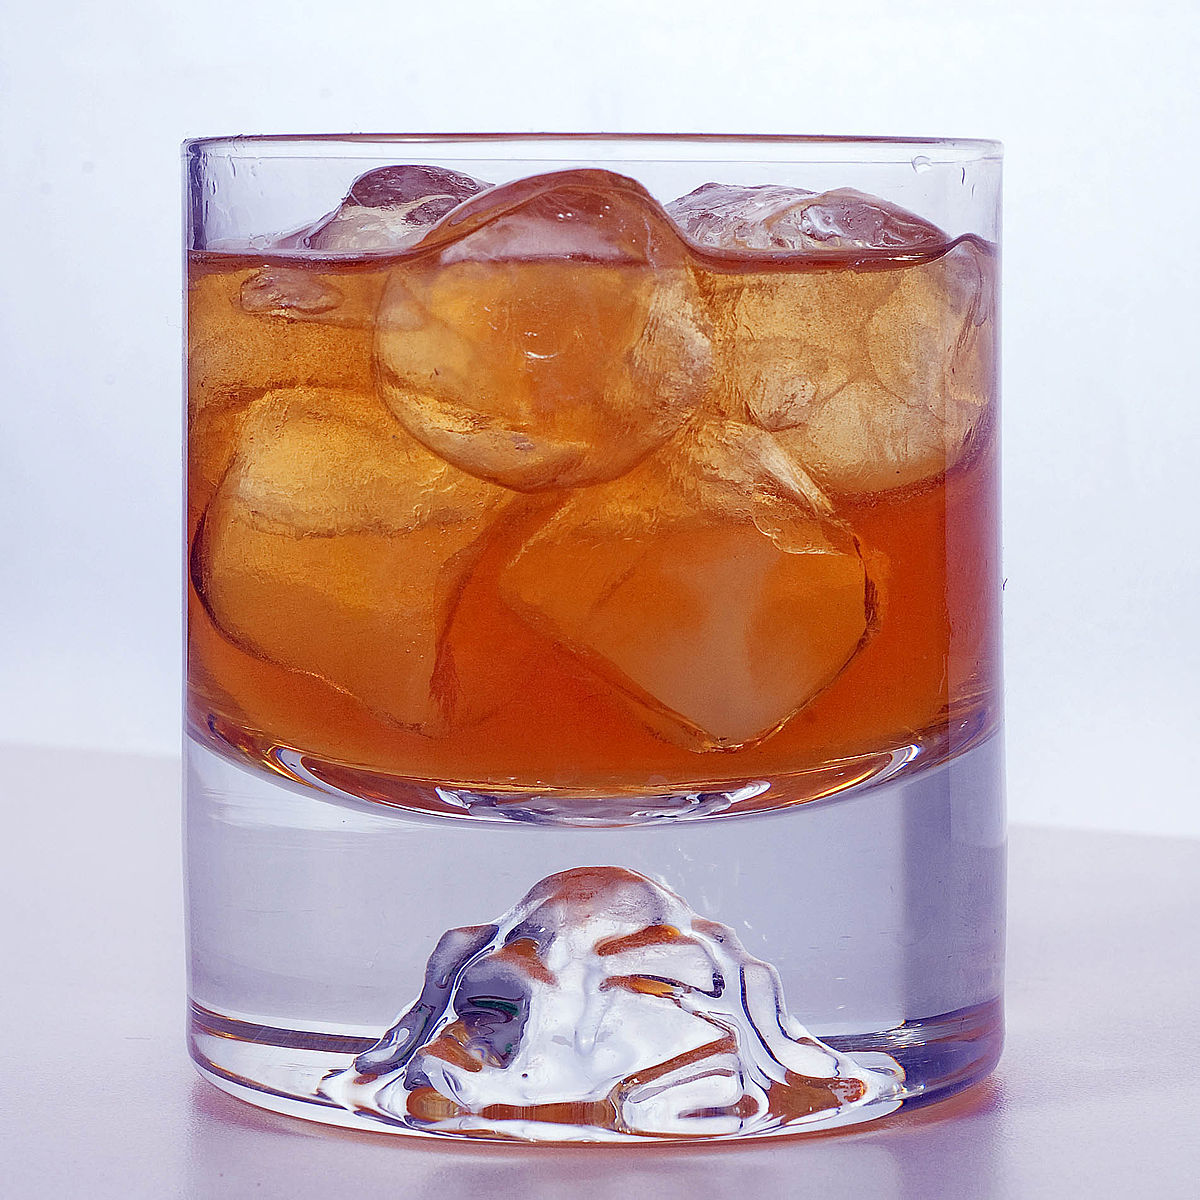 Godfather cocktail wikipedia for List of alcoholic mixed drinks